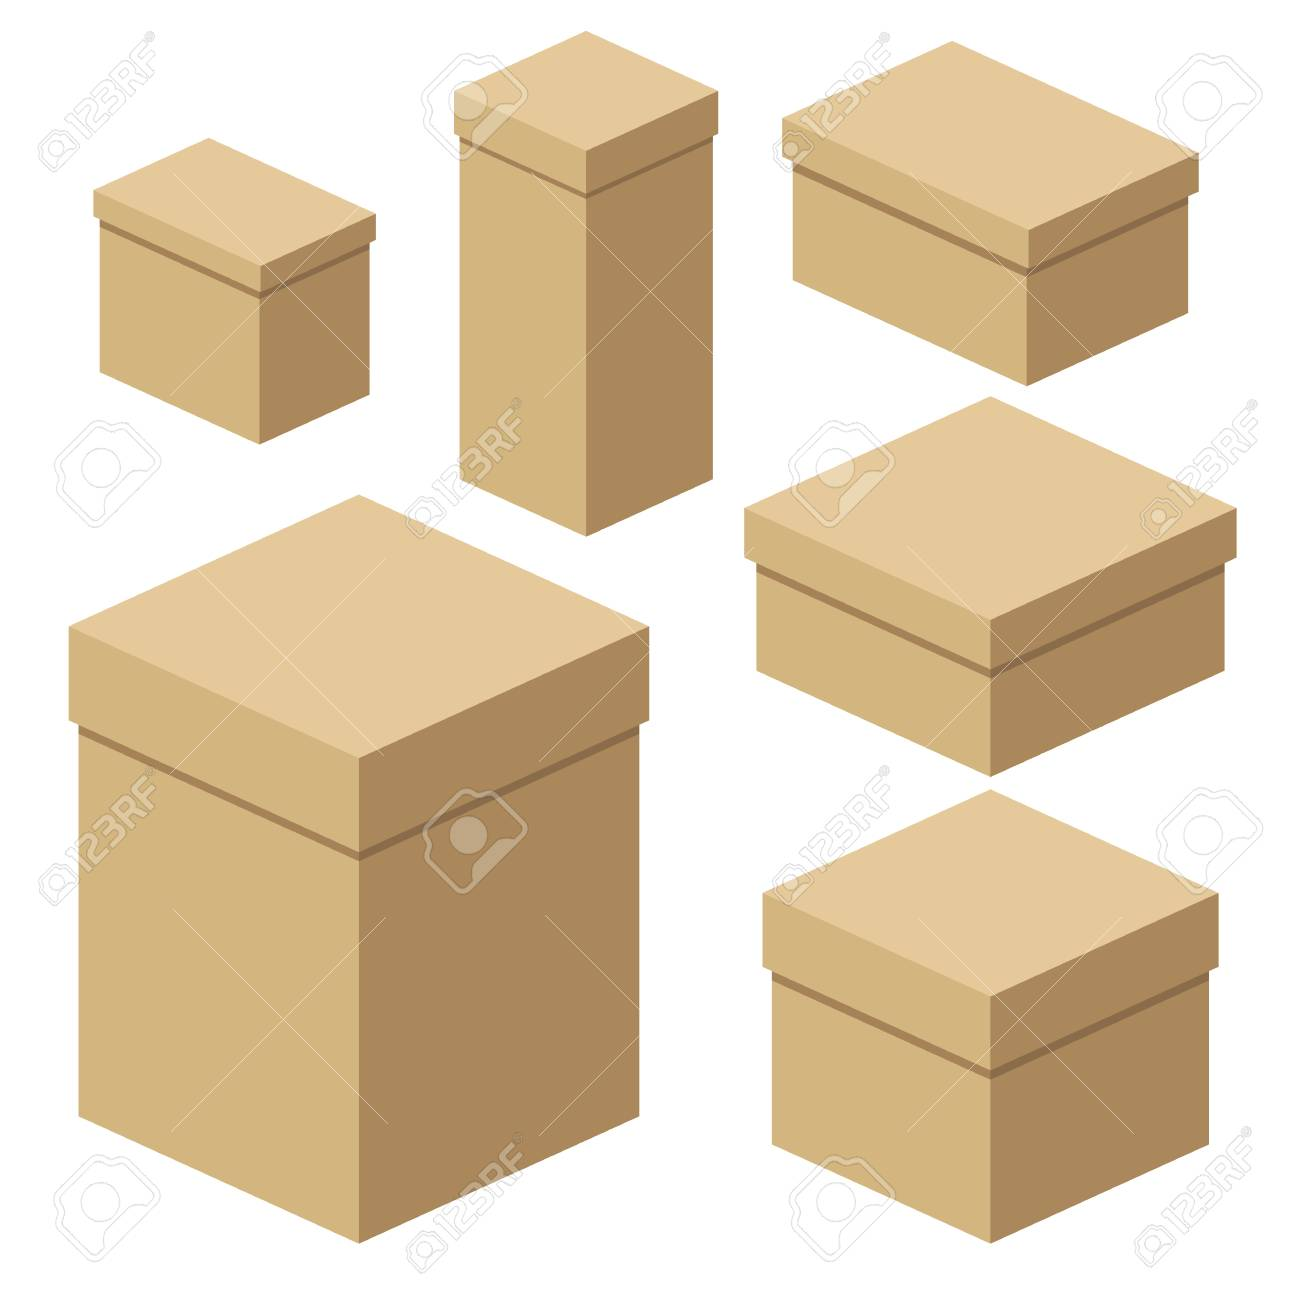 b08d04dd44c Set Of Isometric Craft Boxes Of Different Sizes For Packaging ...